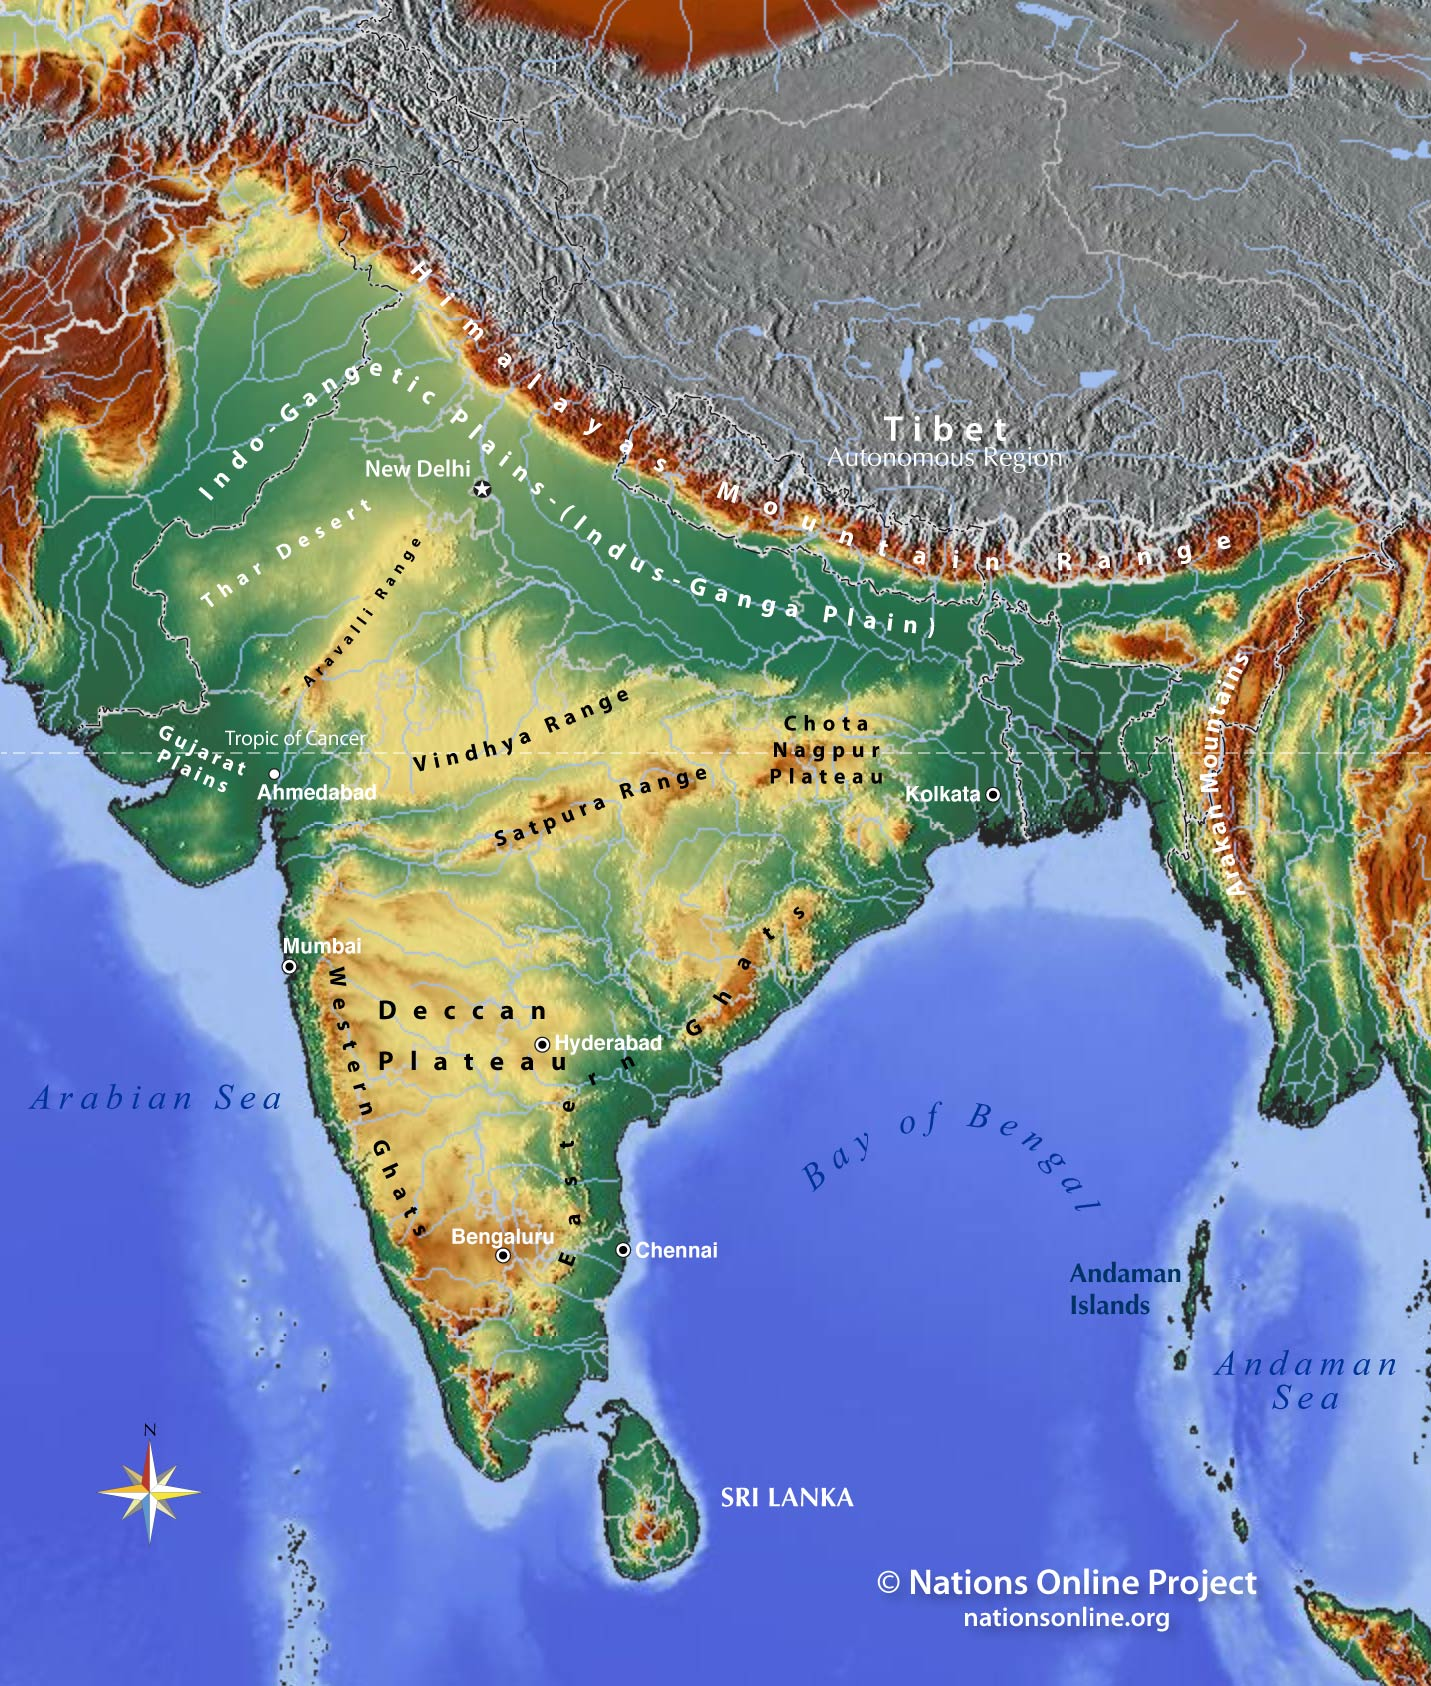 Topographic Map of the Indian subcontinent